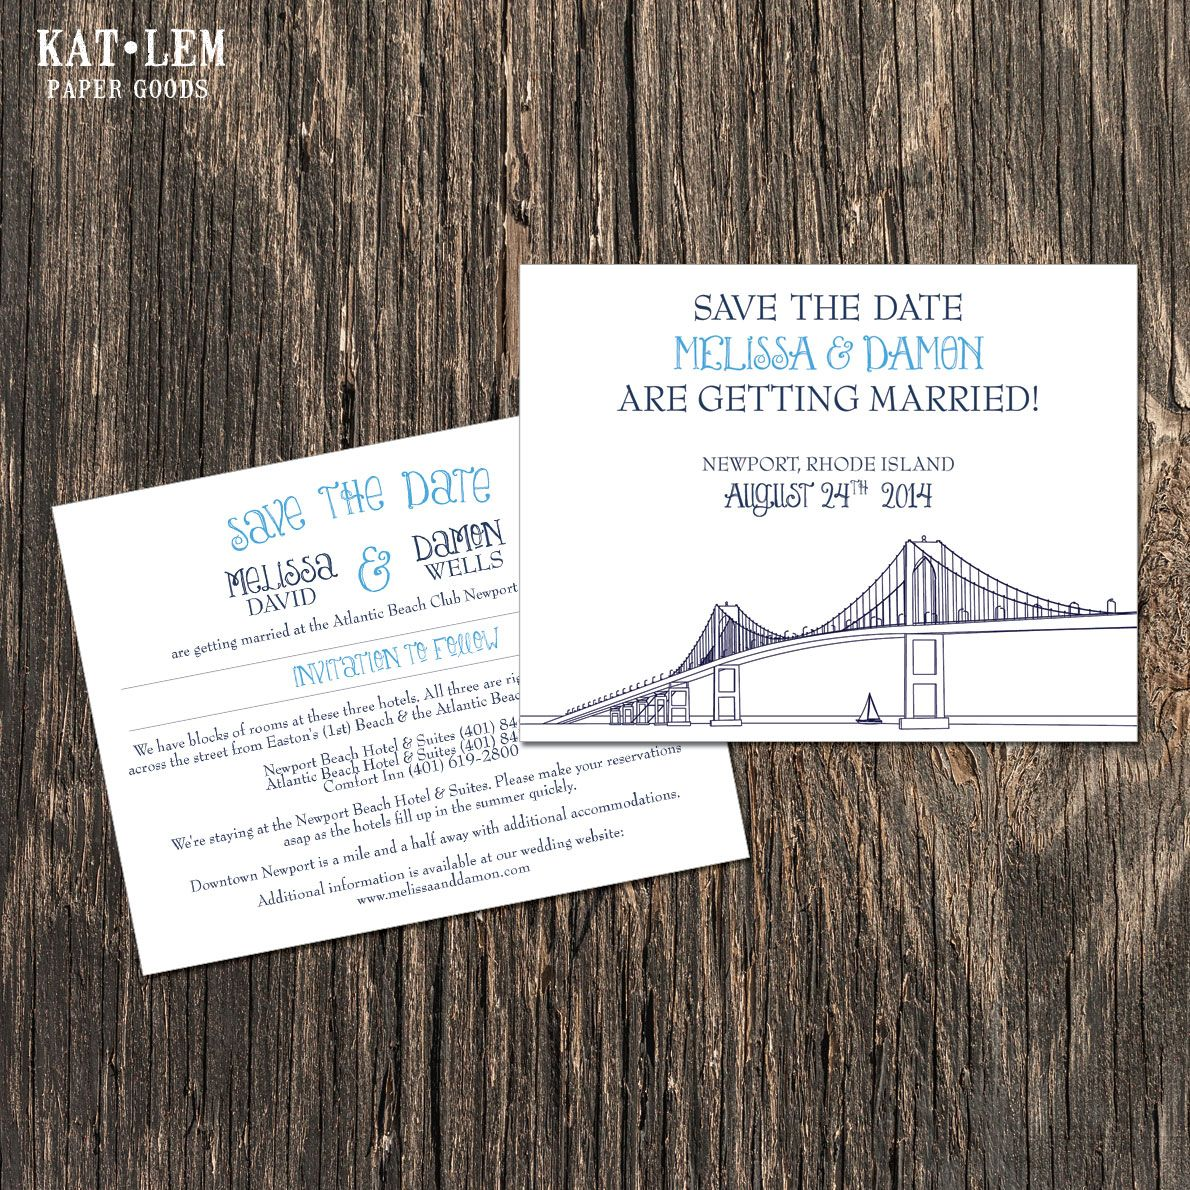 Rhode Island Wedding Invitation Printed: Newoprt Bridge Save The Date Card With Hotel Information